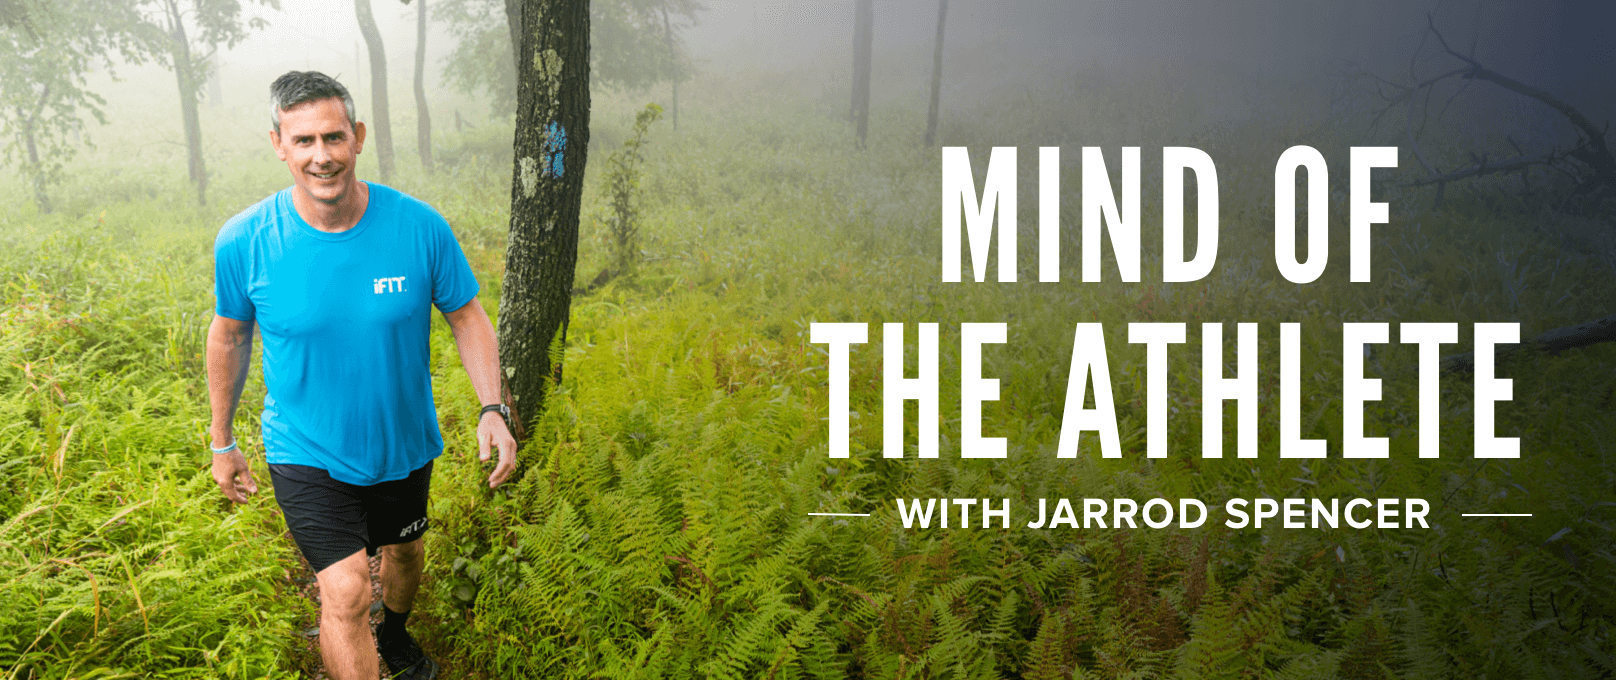 iFit Mind of the Athlete Series walking workouts